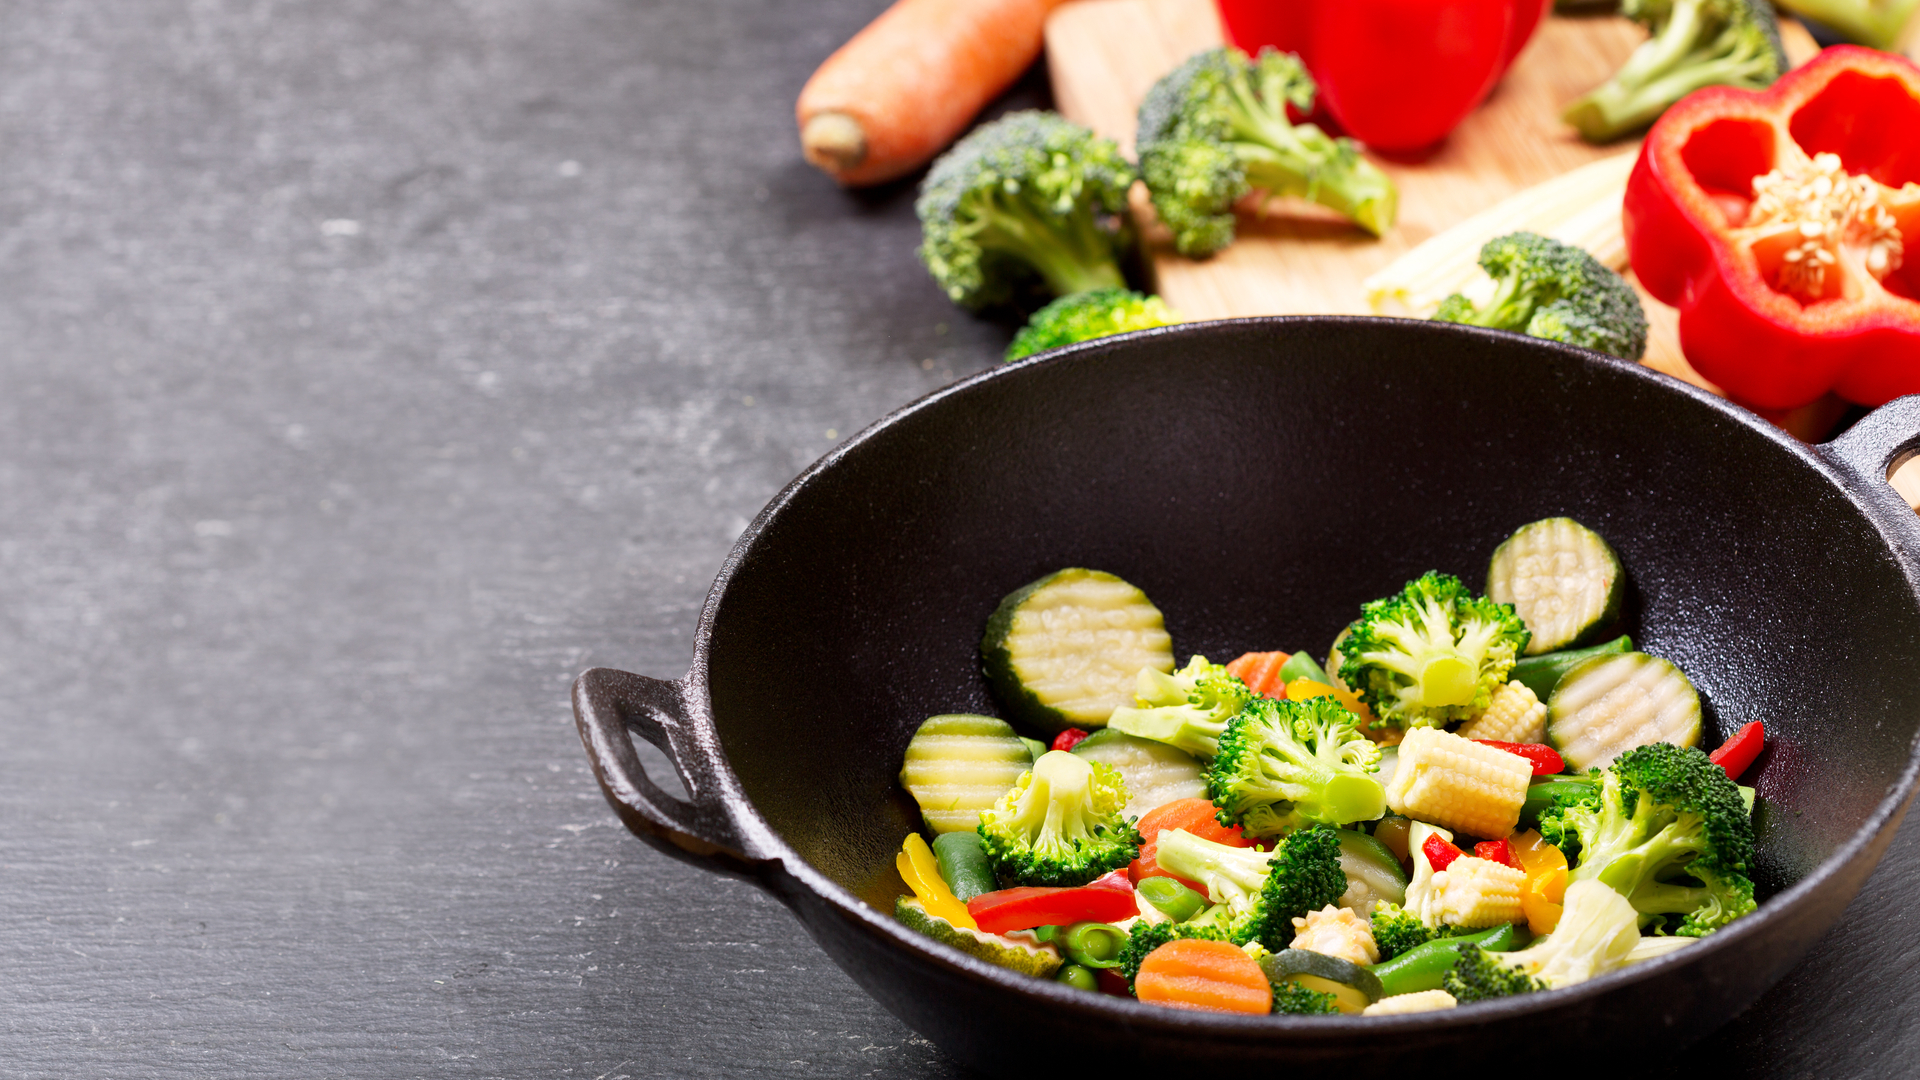 Chicken and vegetable stir fry chopped in a black wok